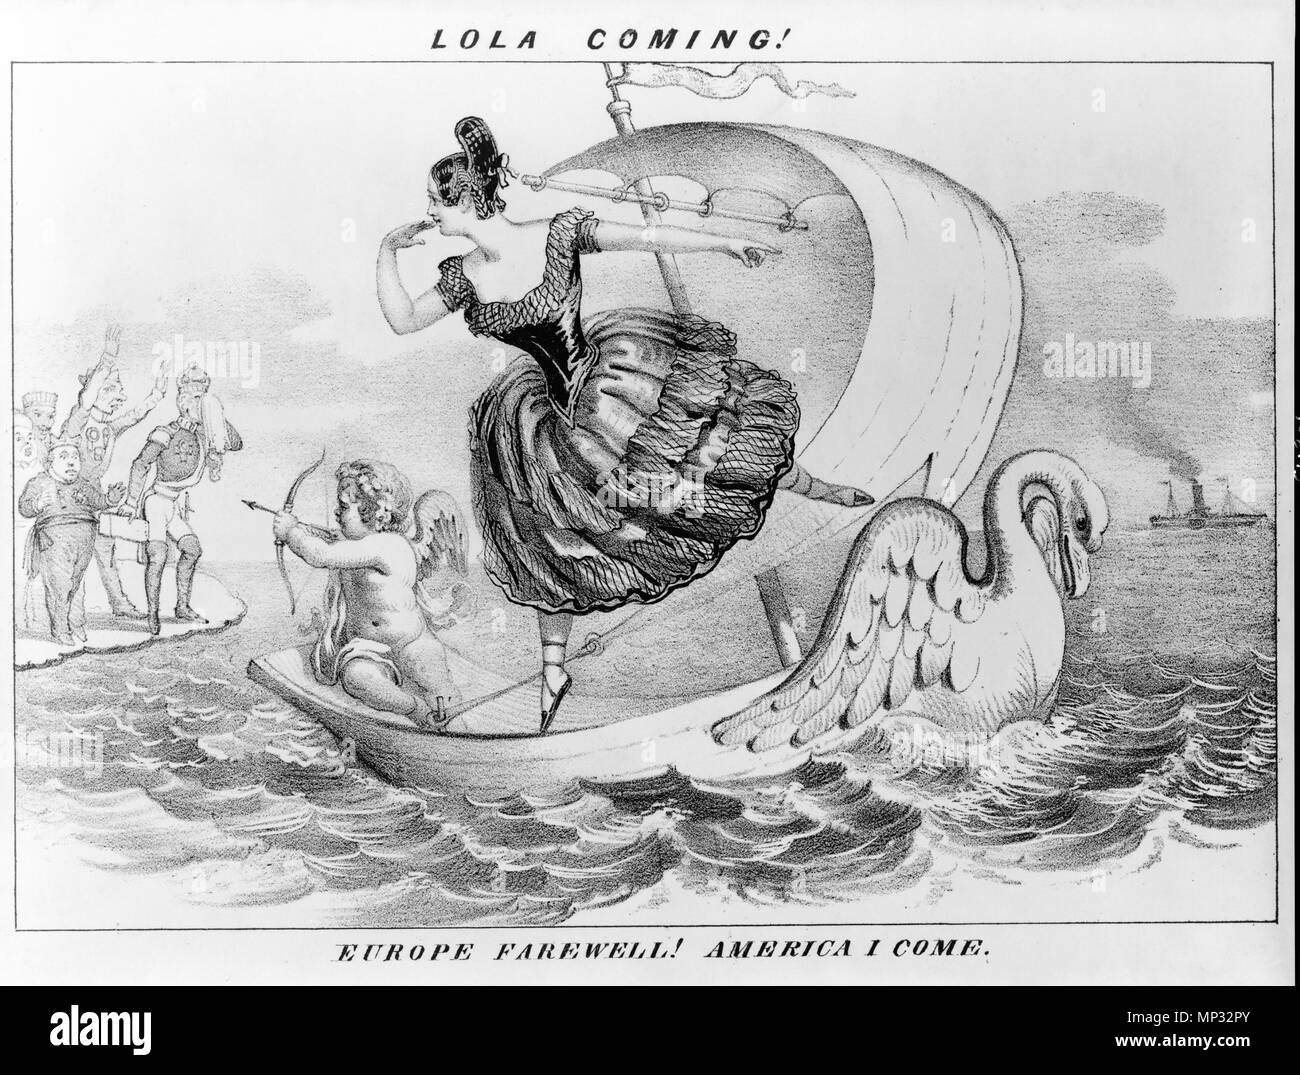 . Lola coming! Europe farewell! America I come. ca.1852? By D.C. Johnston. Cartoon of Lola Montez. circa 1852.   817 LolaComing ca1852 byDClaypooleJohnston LibraryOfCongress - Stock Image